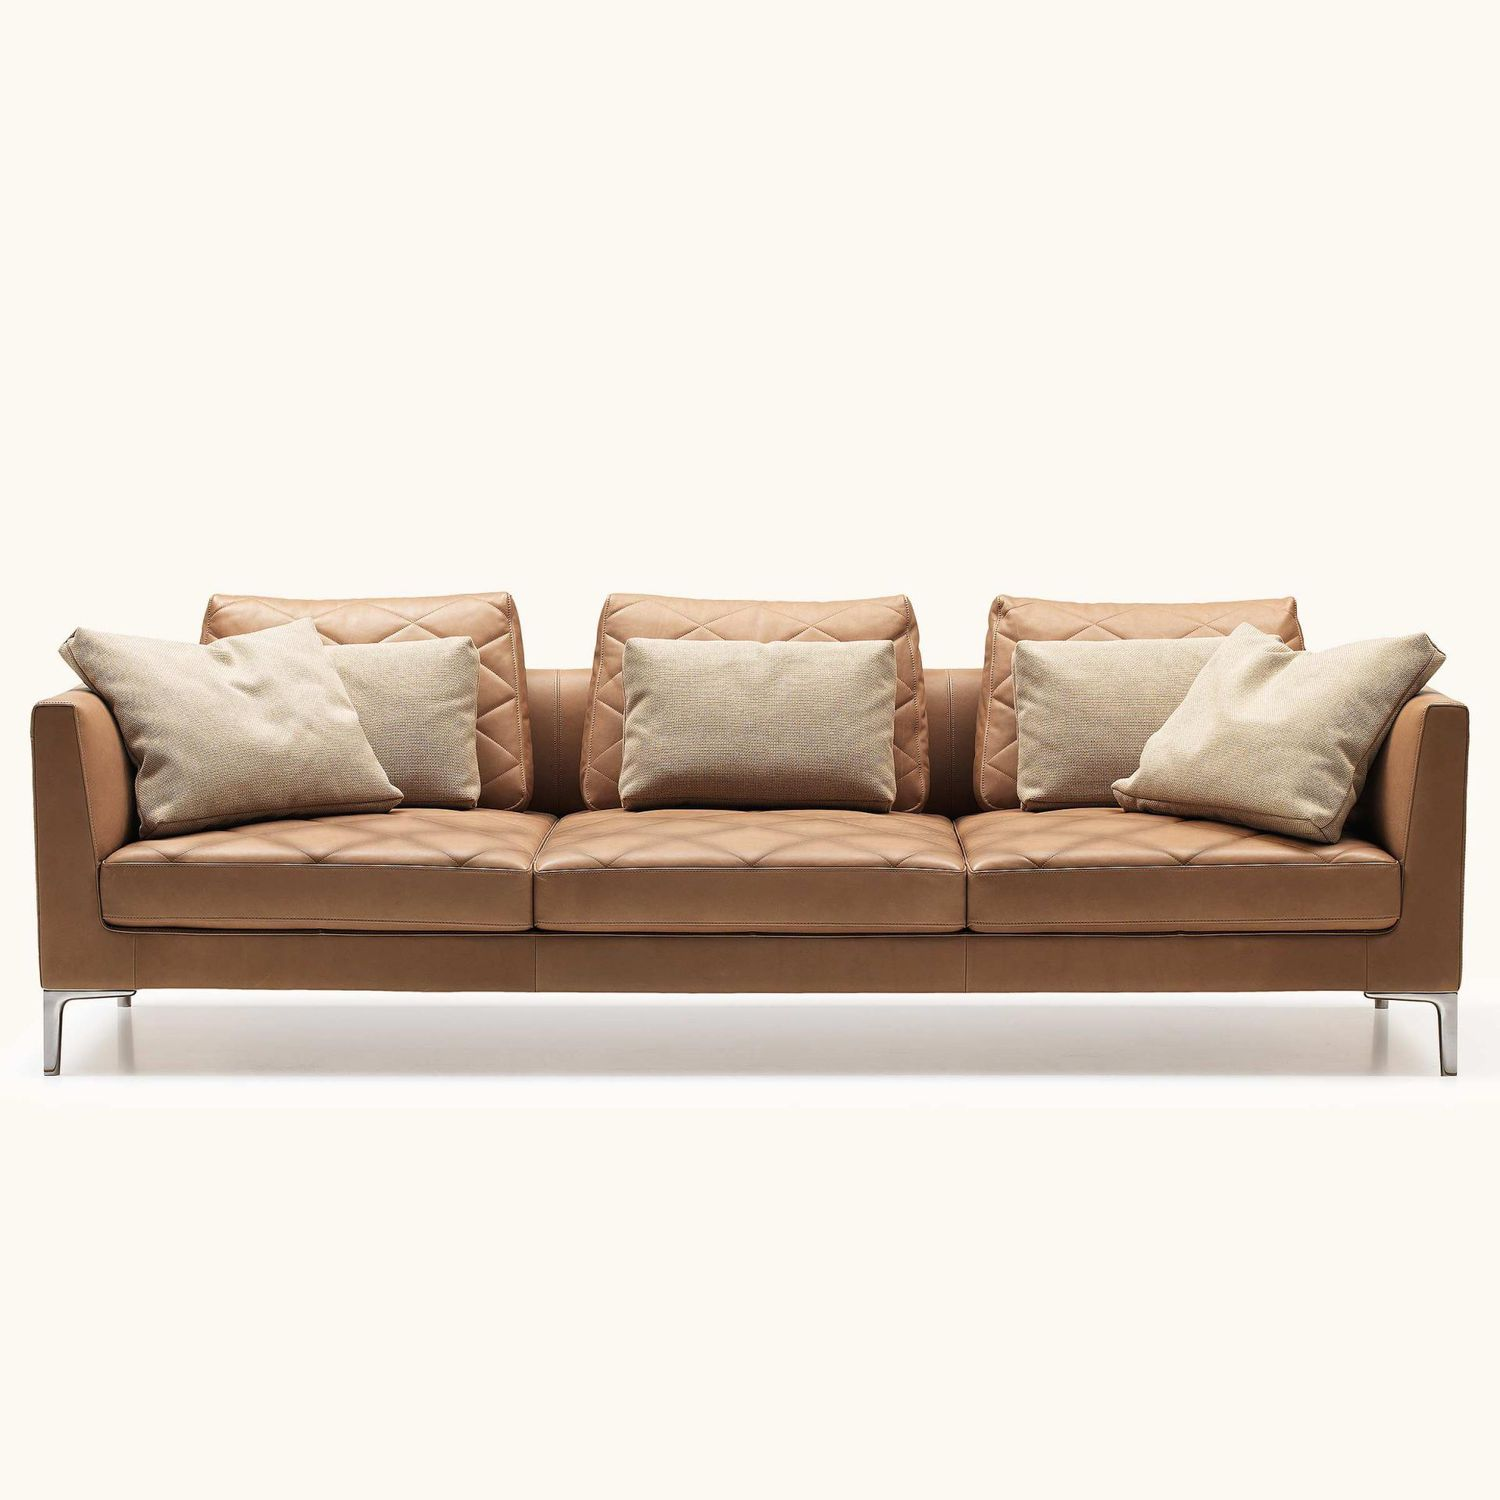 leather and wood sofa. Contemporary Sofa / Leather Wood 2-person - DS-48 By Gordon Guillaumier And S